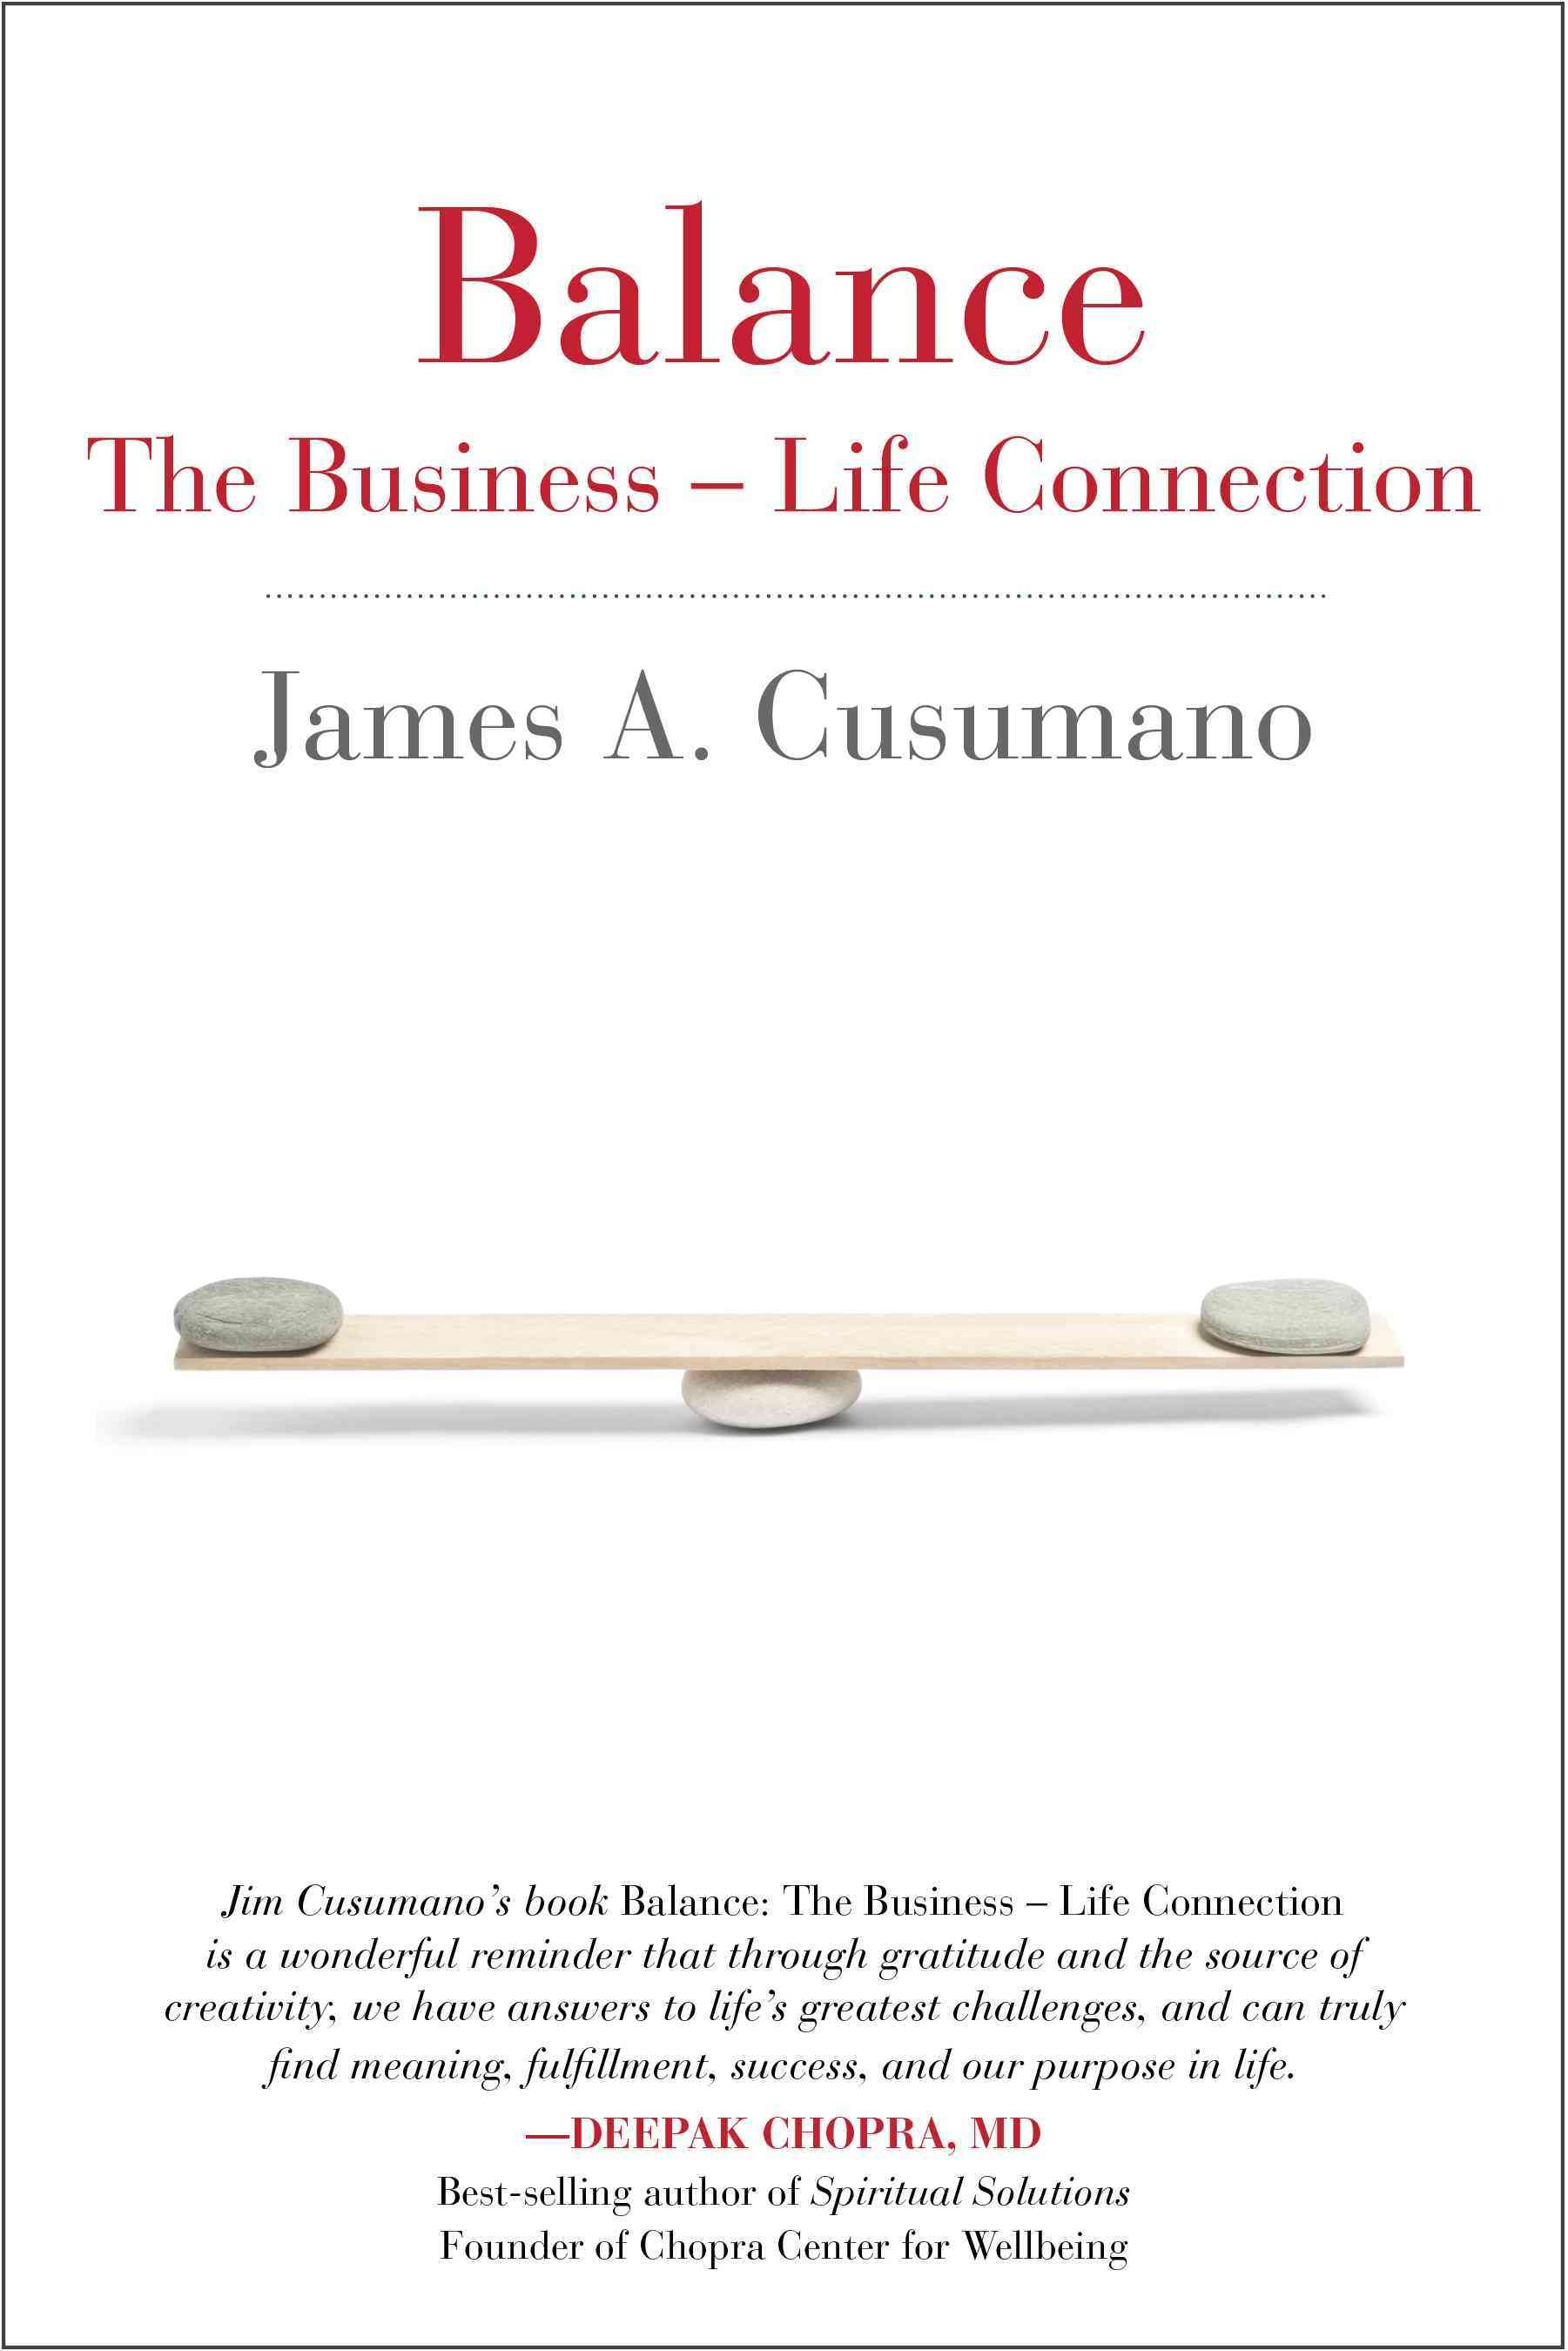 Balance: The Business - Life Connection (Paperback)